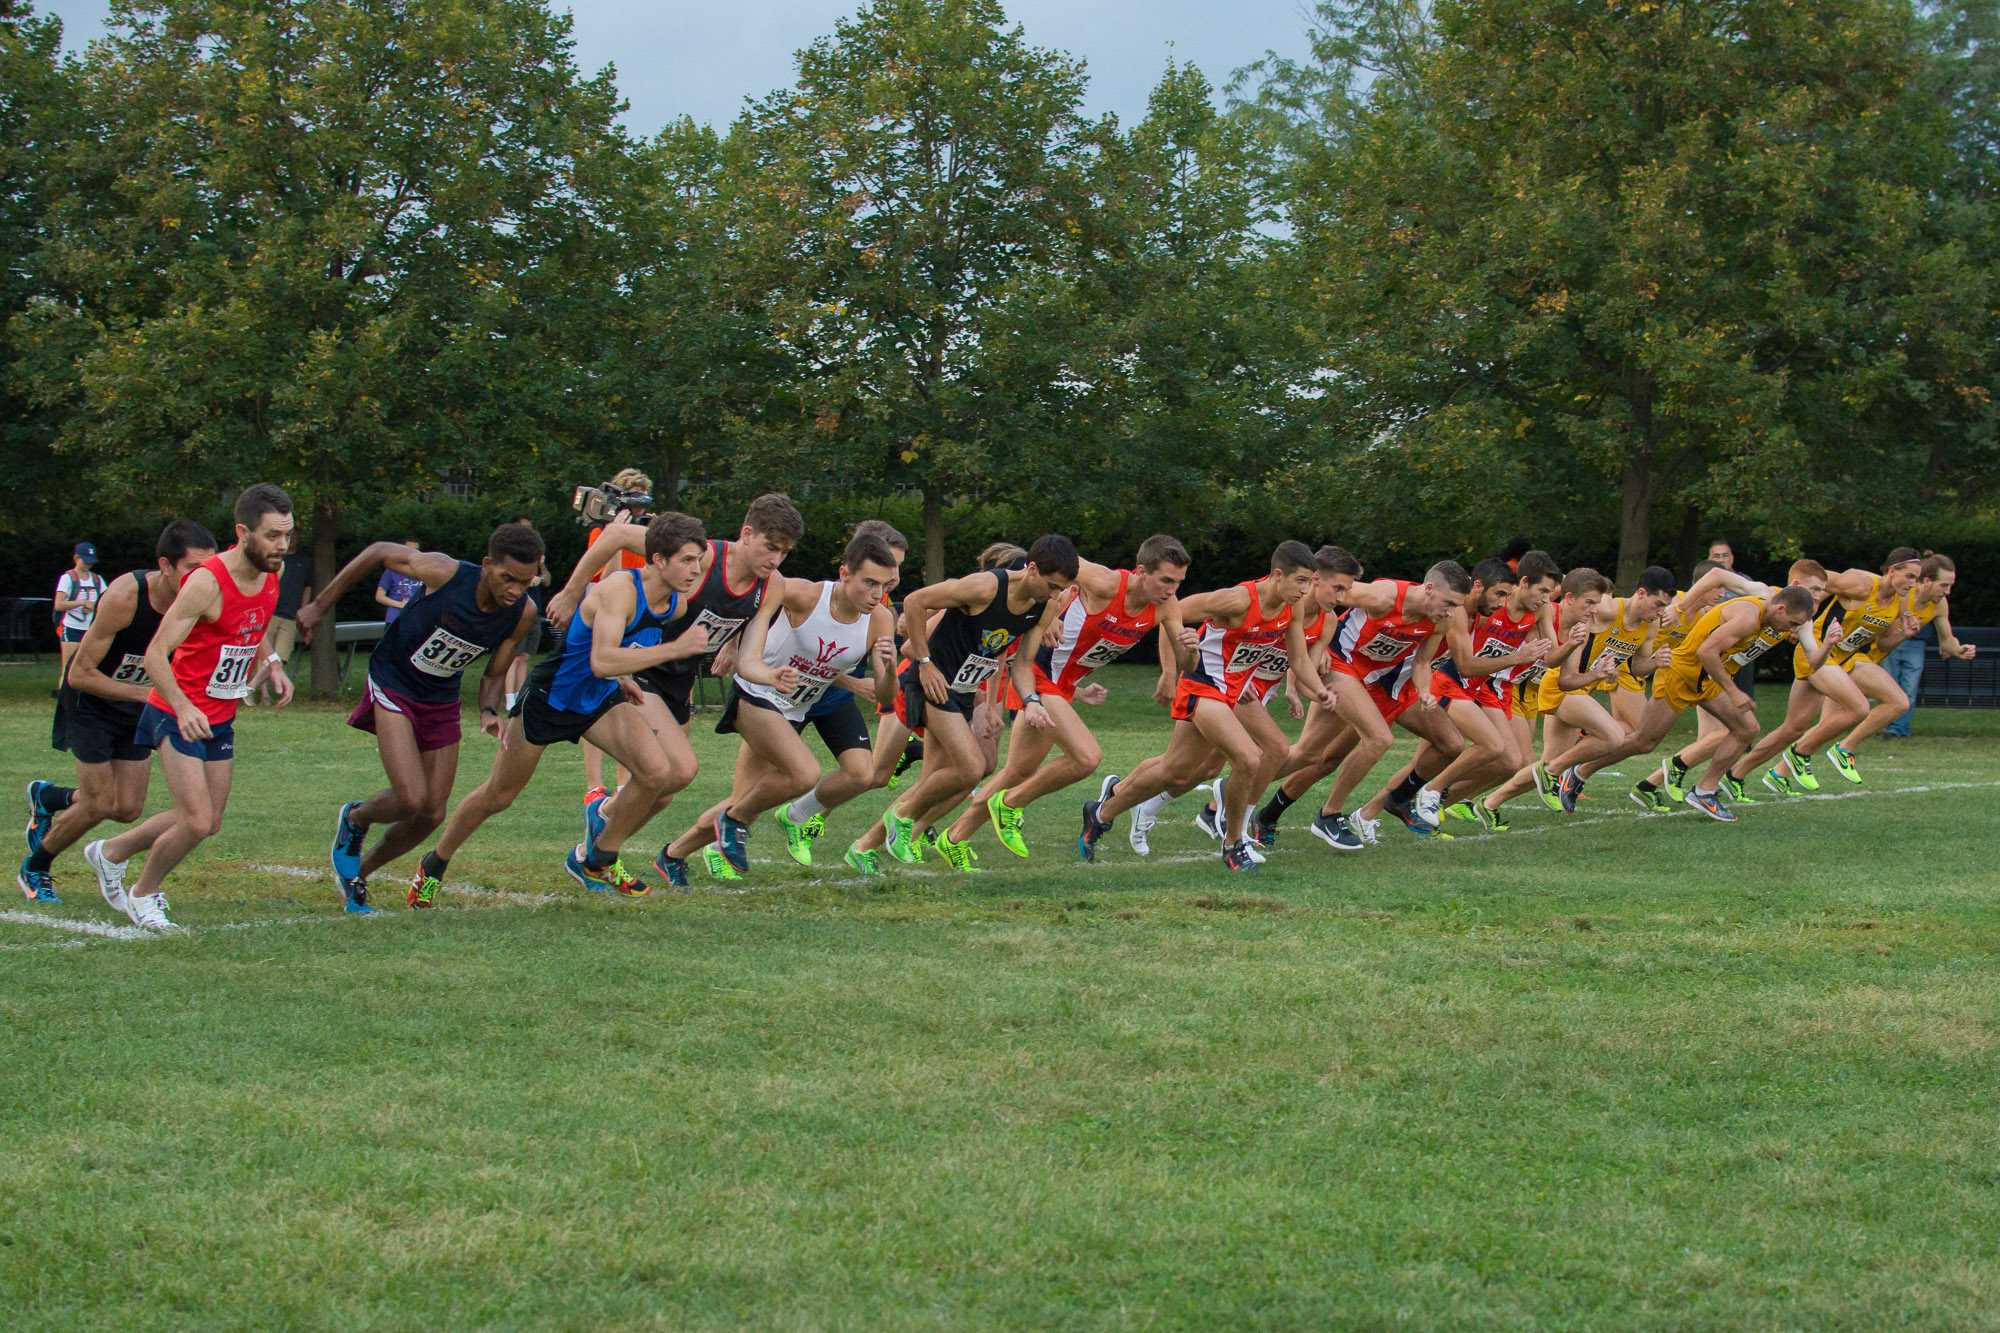 The men taking off at the Illini Challenge 2015 at the Arboretum on September 4.